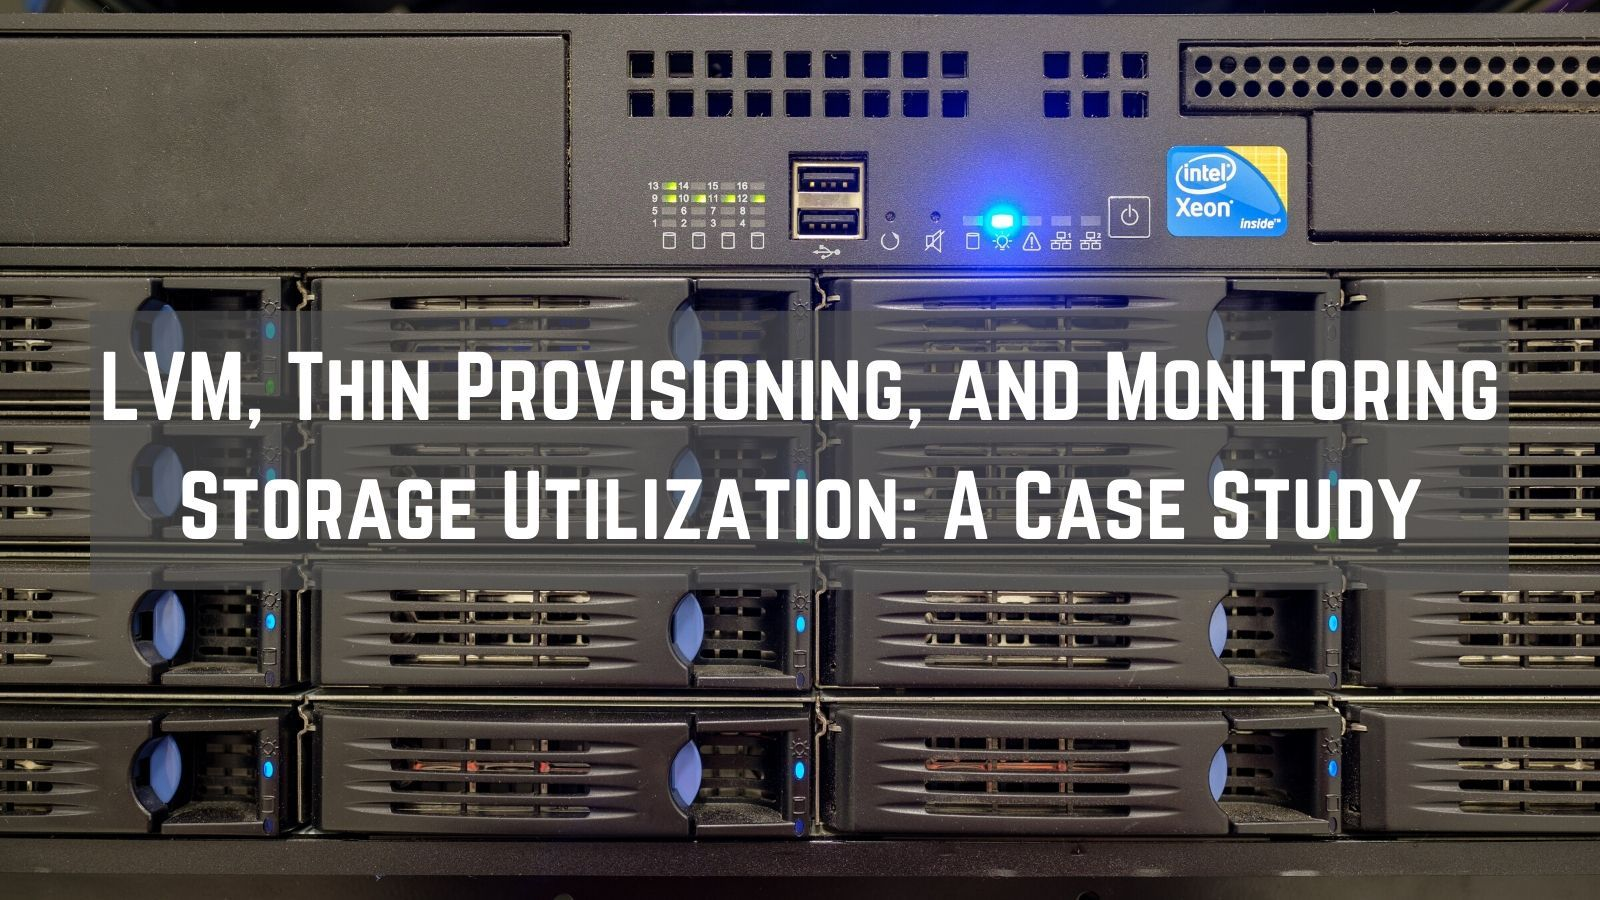 LVM, Thin Provisioning, and Monitoring Storage Use: A Case Study